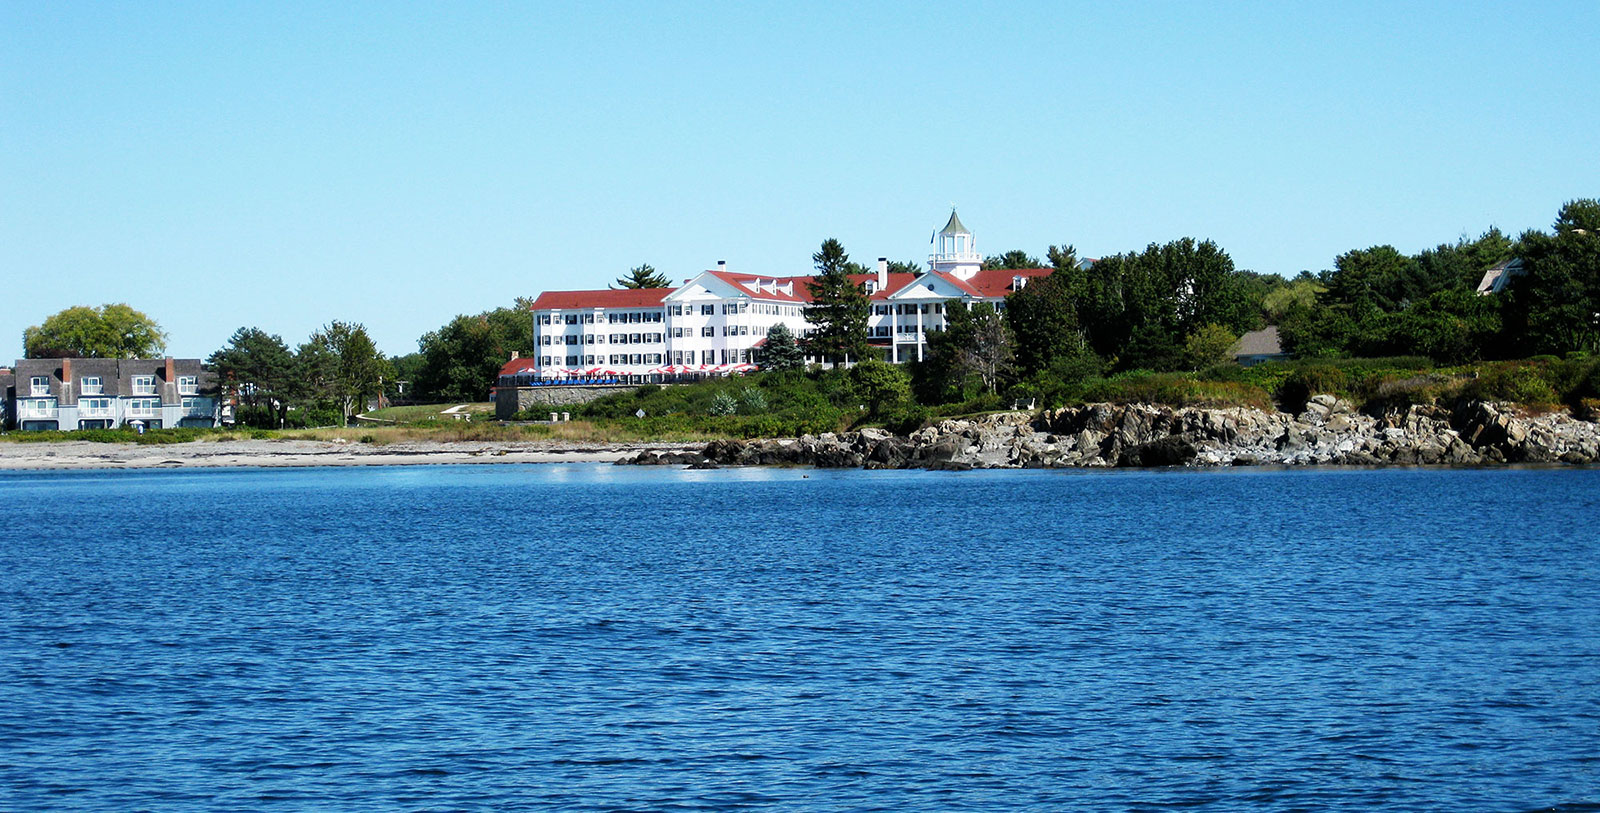 Image of Hotel Exterior with Beach The Colony Hotel, 1914, Member of Historic Hotels of America, in Kennebunkport, Maine, Overview